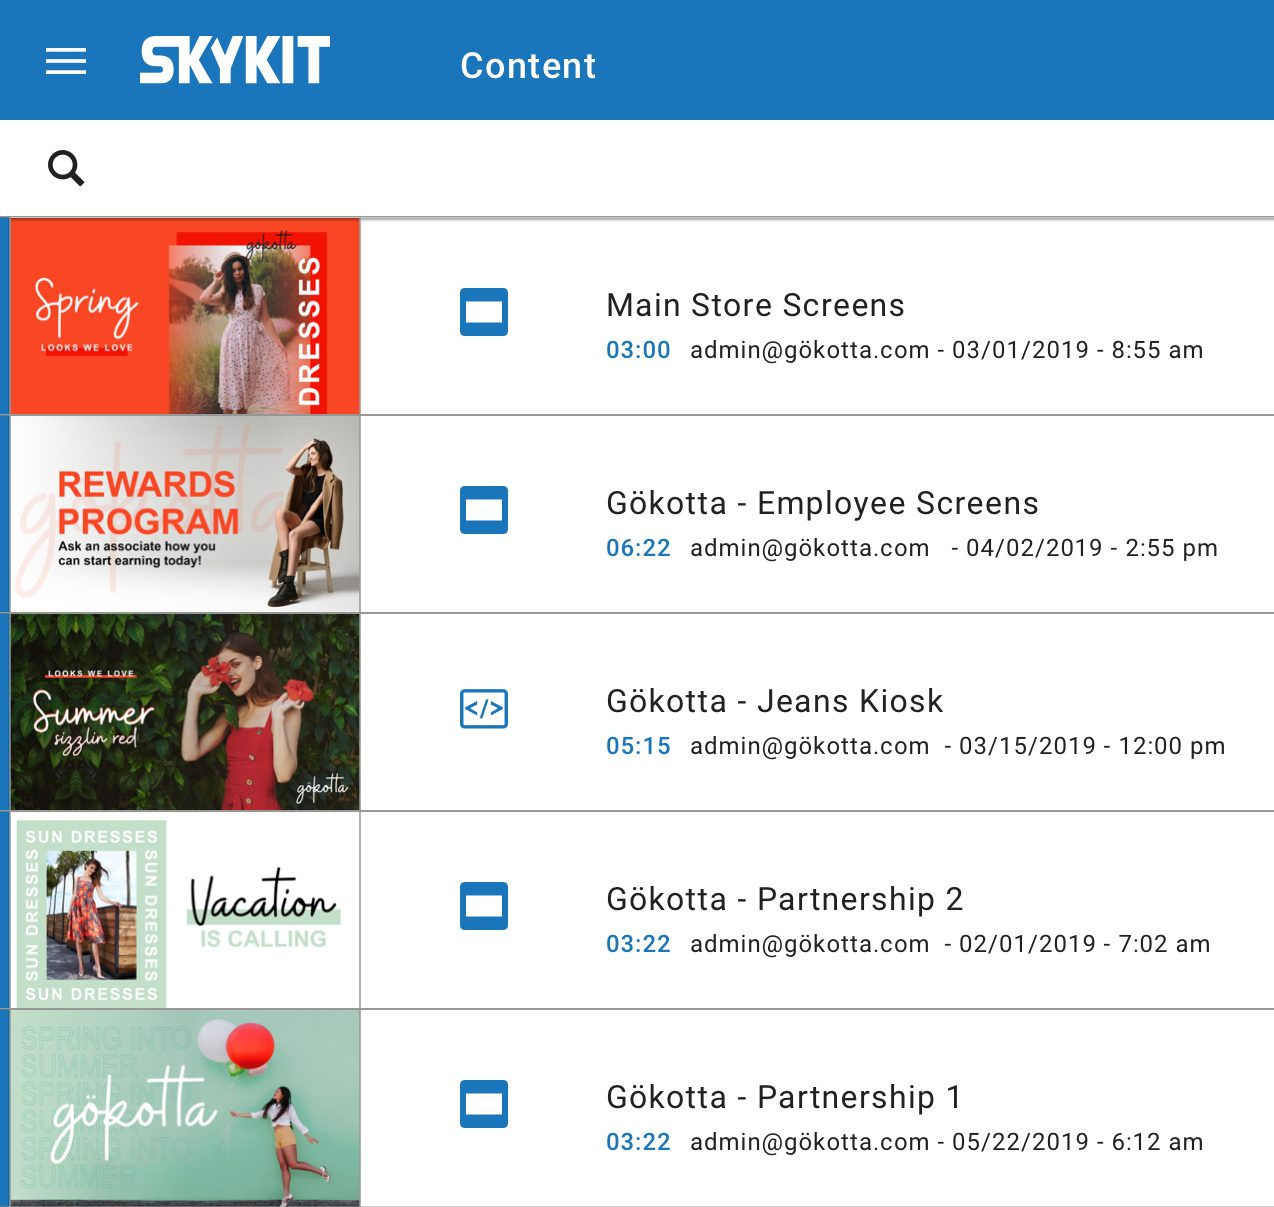 skykit digital signage content management options